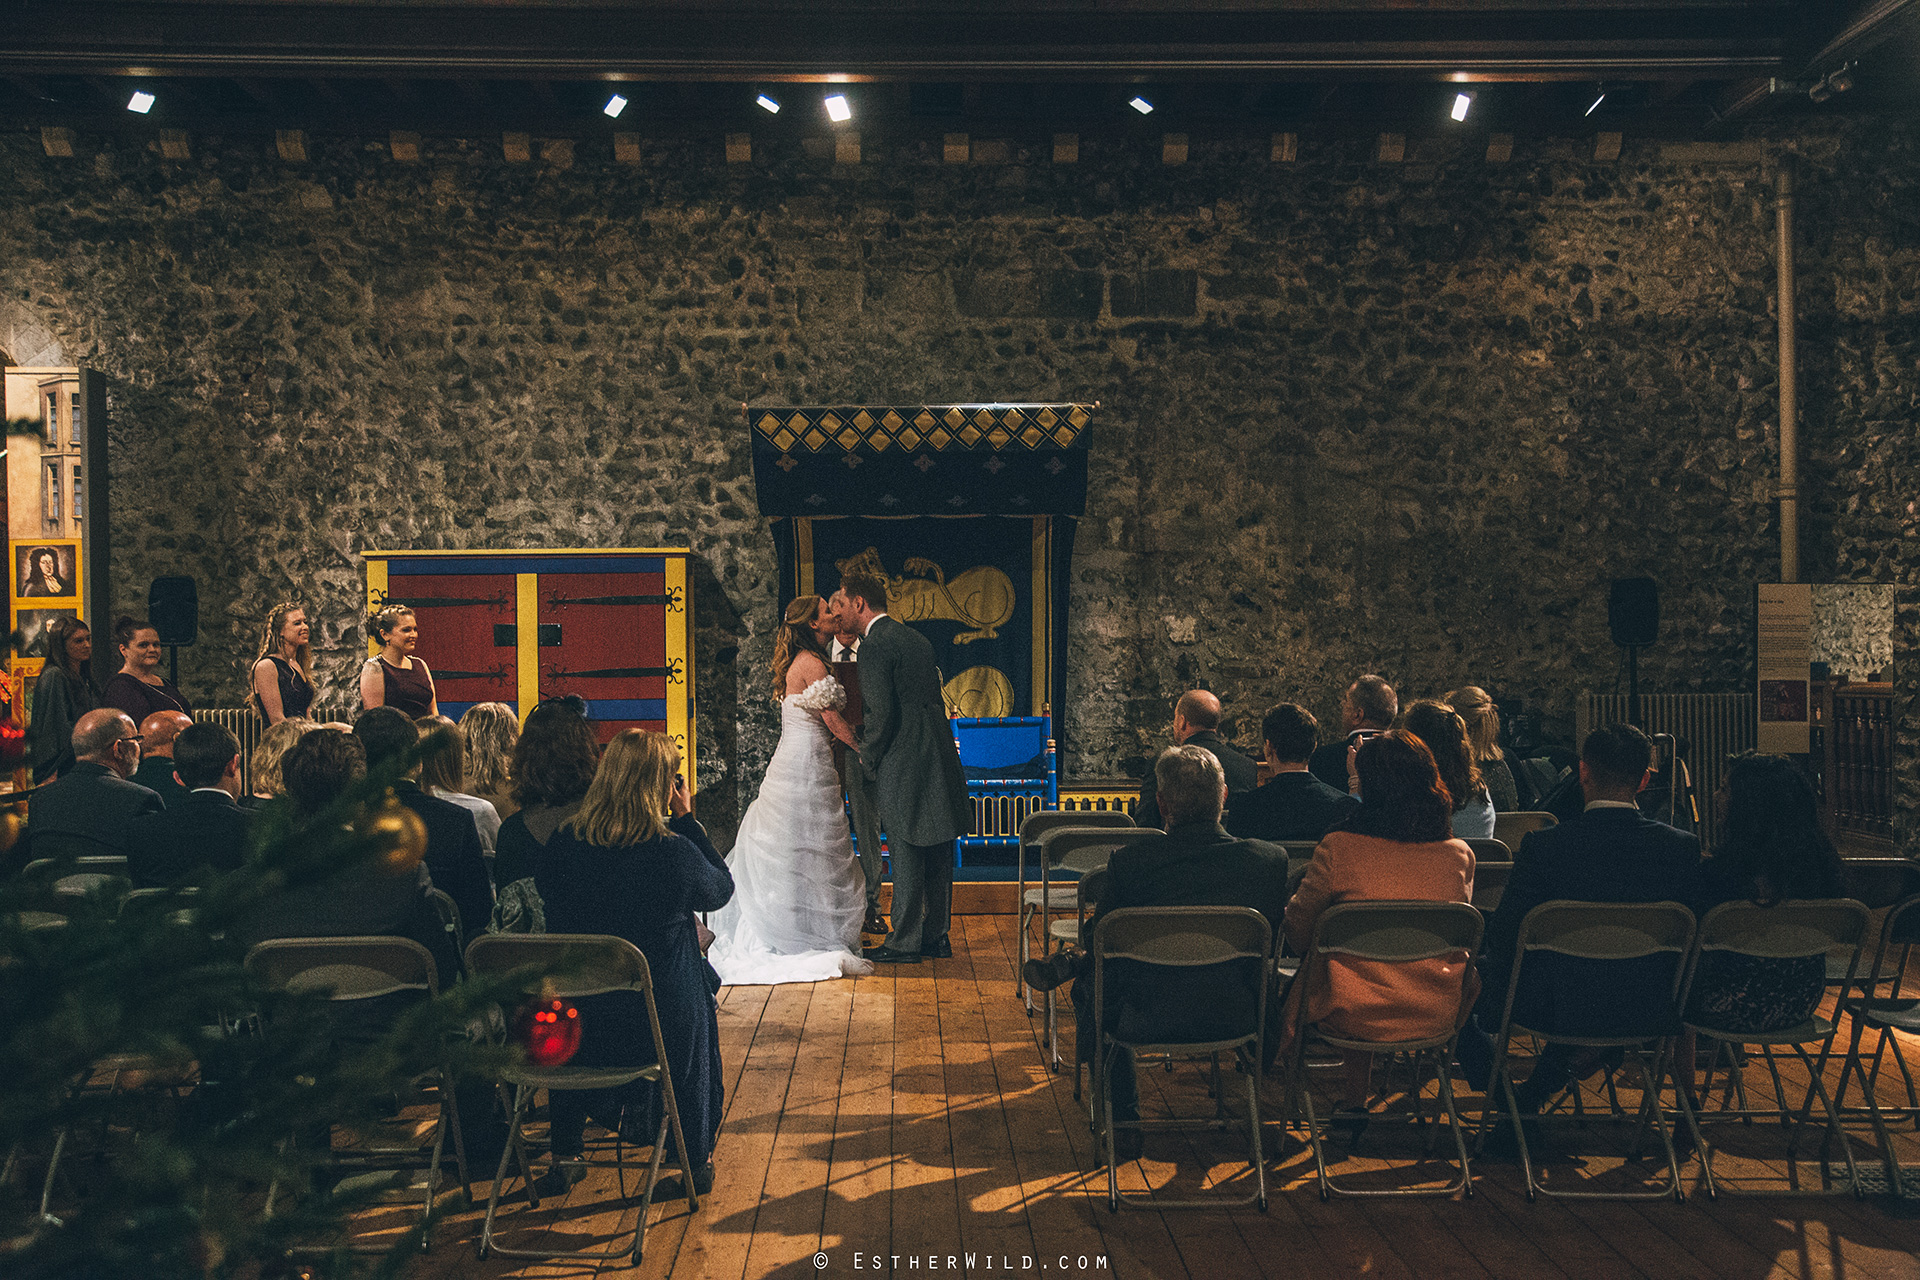 norwich_castle_wedding_esther_wild_photographer_norfolk (35).jpg